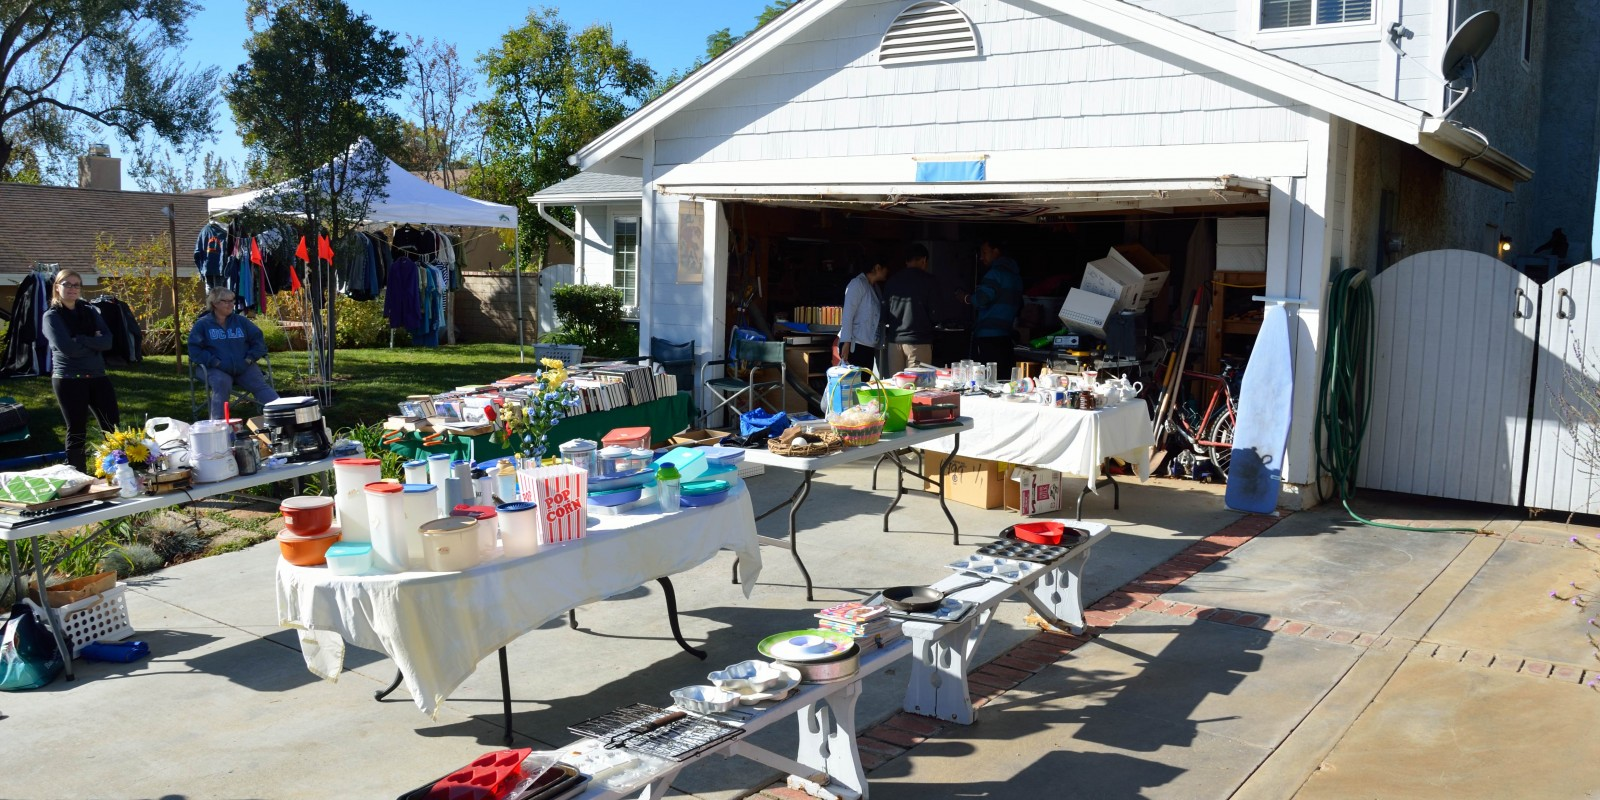 Village Wide Garage Sales – 6.23.16 – 6.26.16